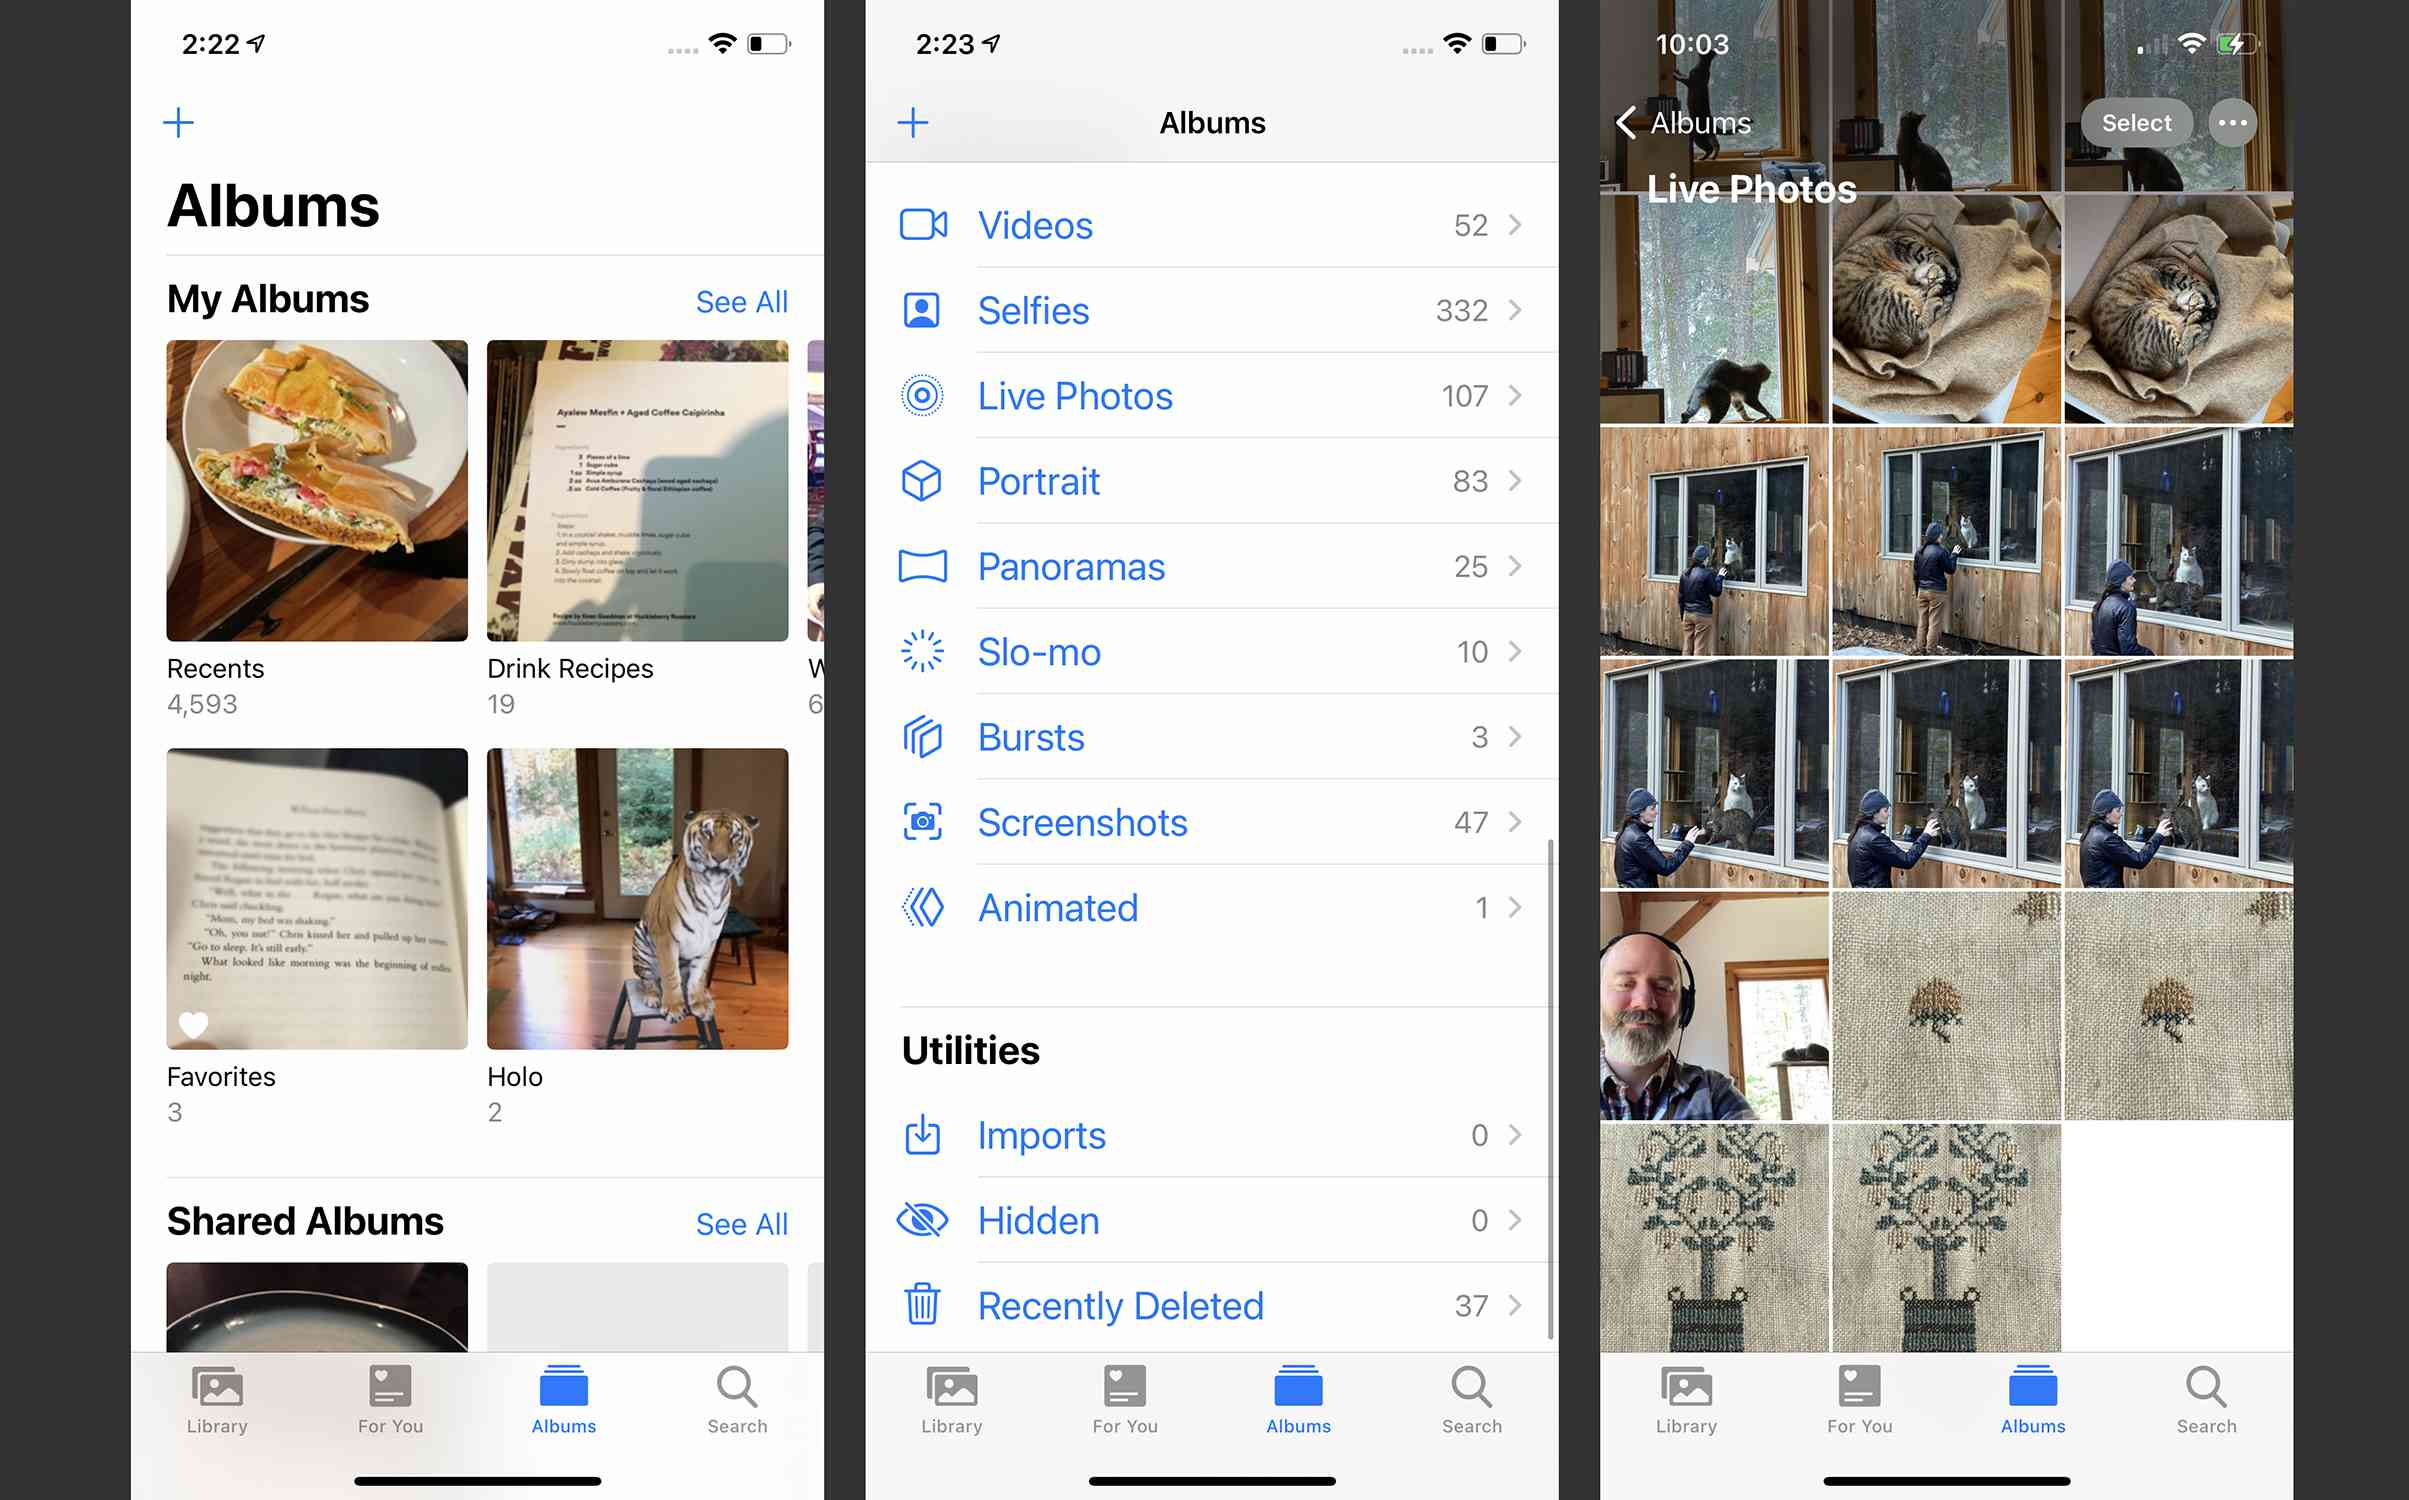 Screenshots of finding Live Photos in the Photos app